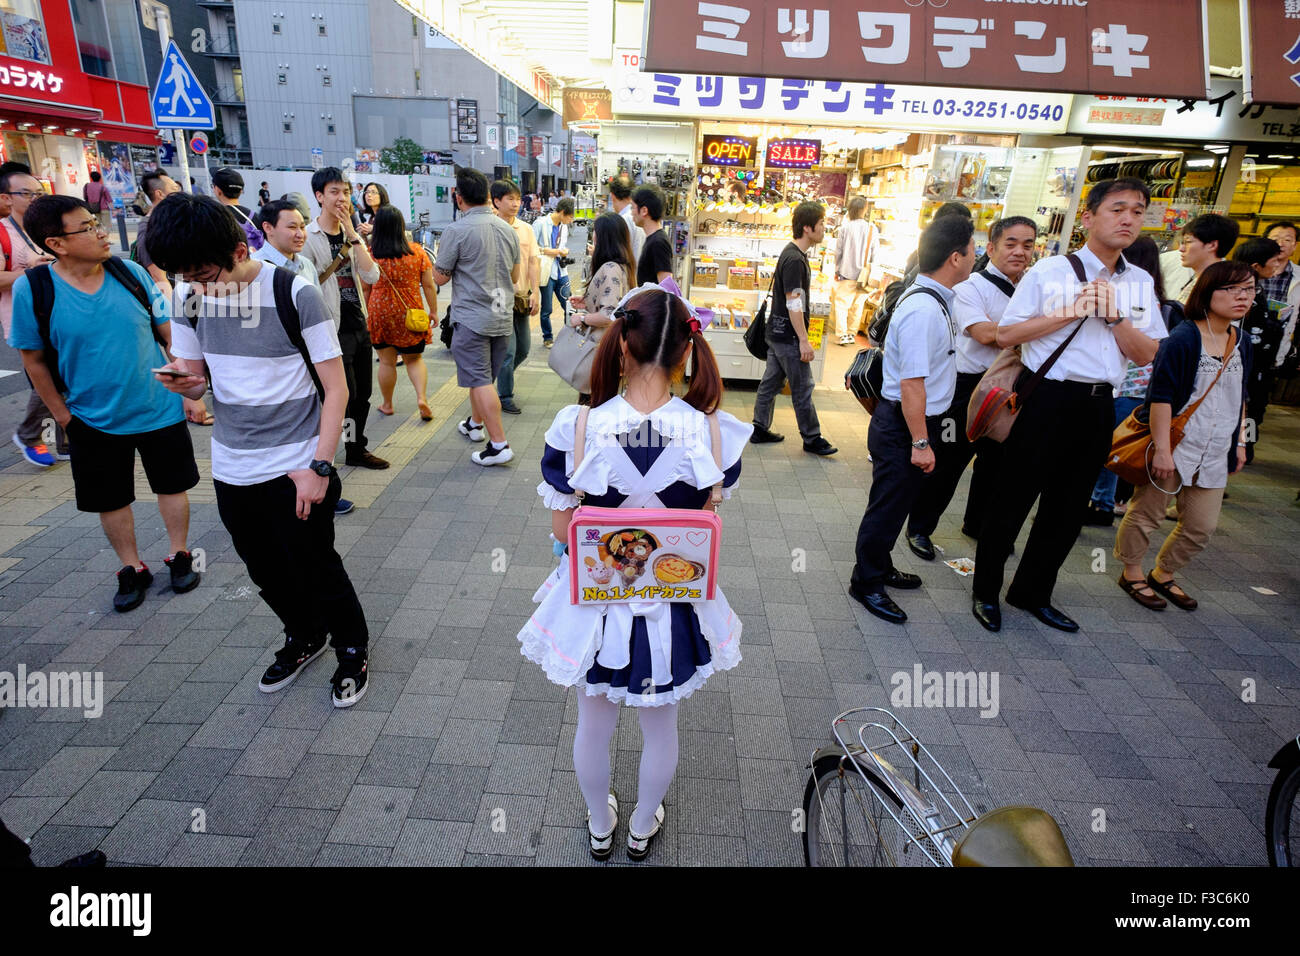 Young woman advertising Maids' Cafe in Akihabara known as Electric Town or Geek Town selling Manga based games - Stock Image